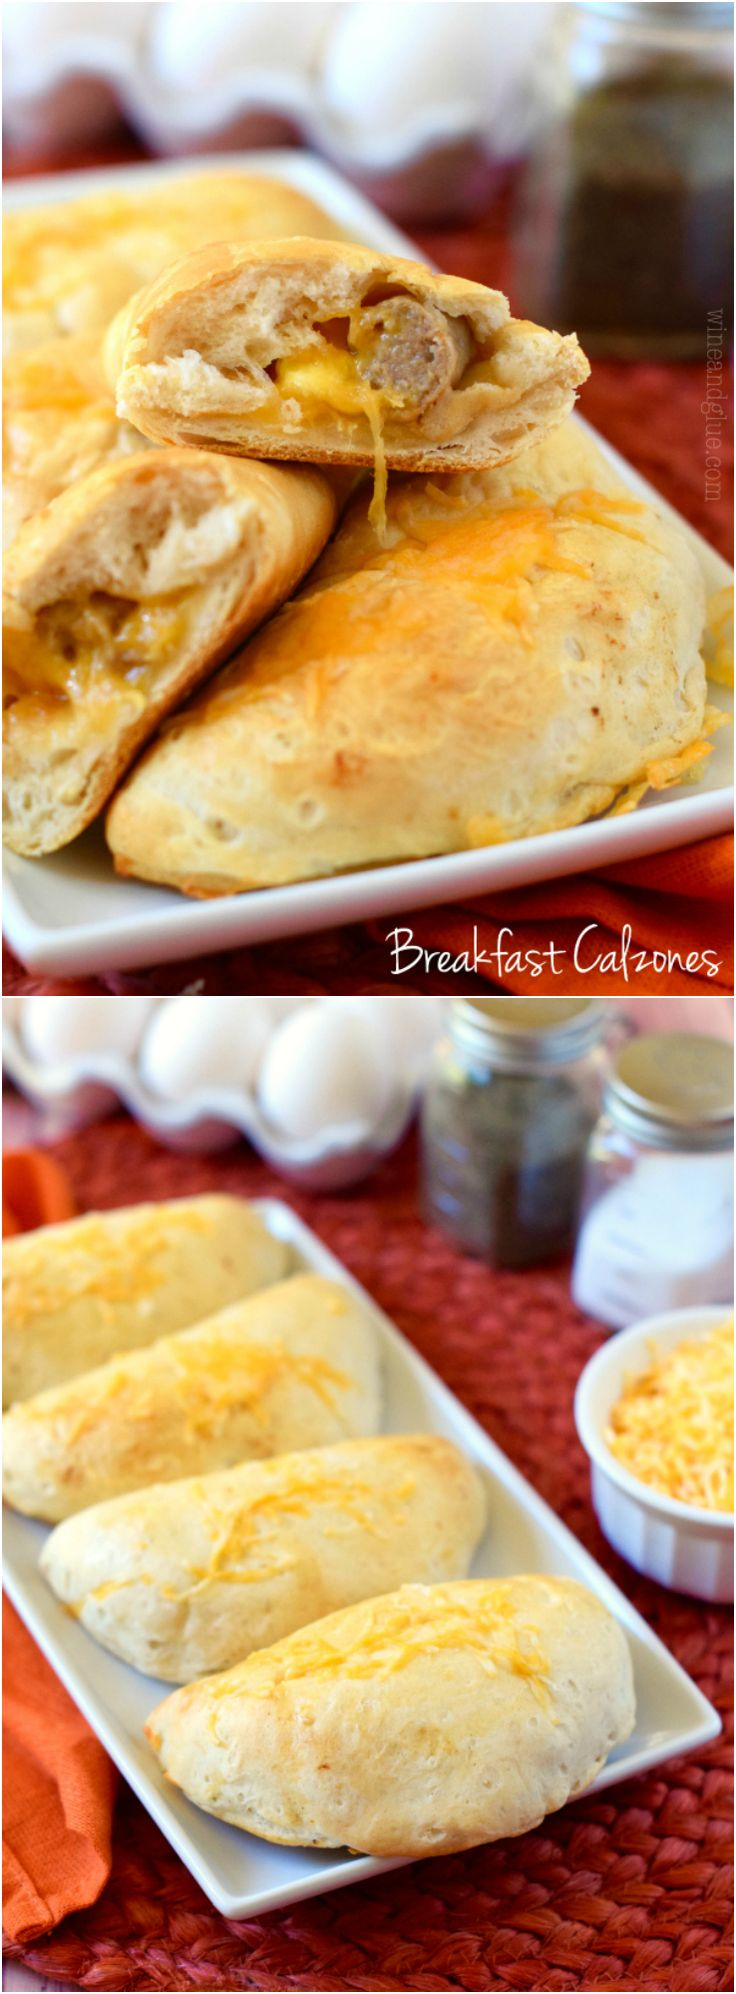 These Breakfast Calzones are such a fun and easy delicious breakfast! They are perfect for feeding a whole mess of kids!